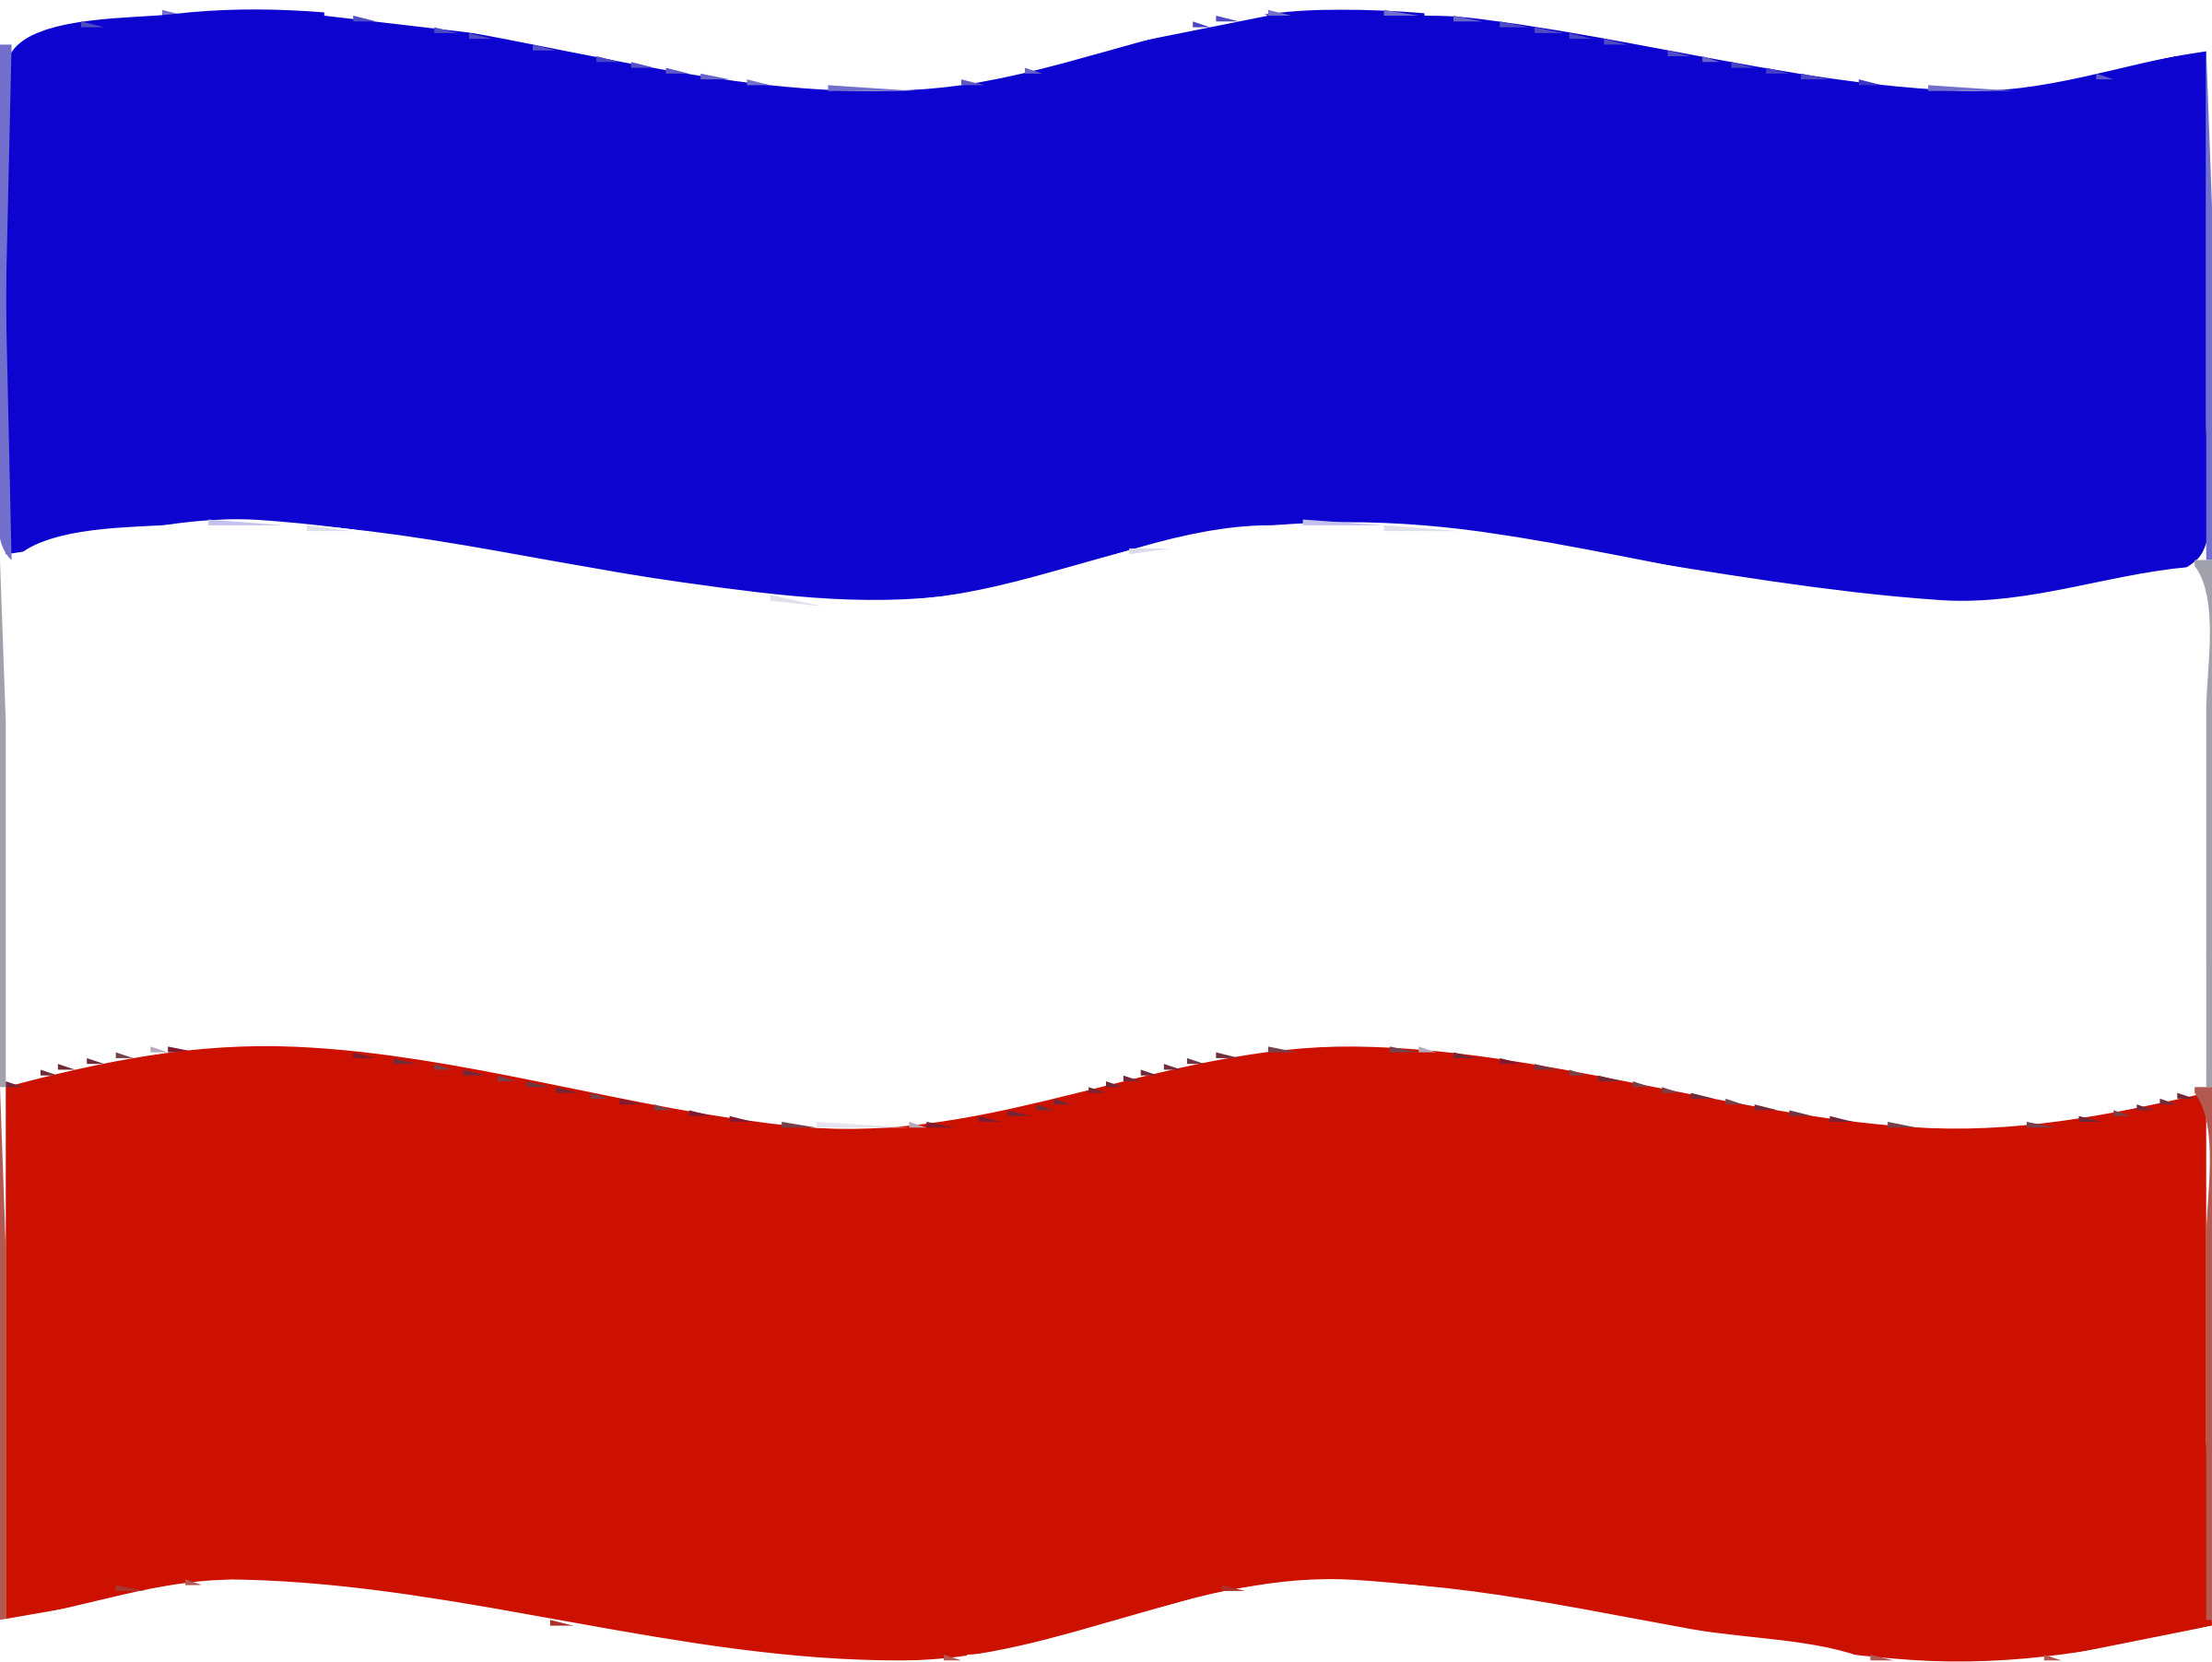 Flag of Serbia Montenegro wave by Joesph